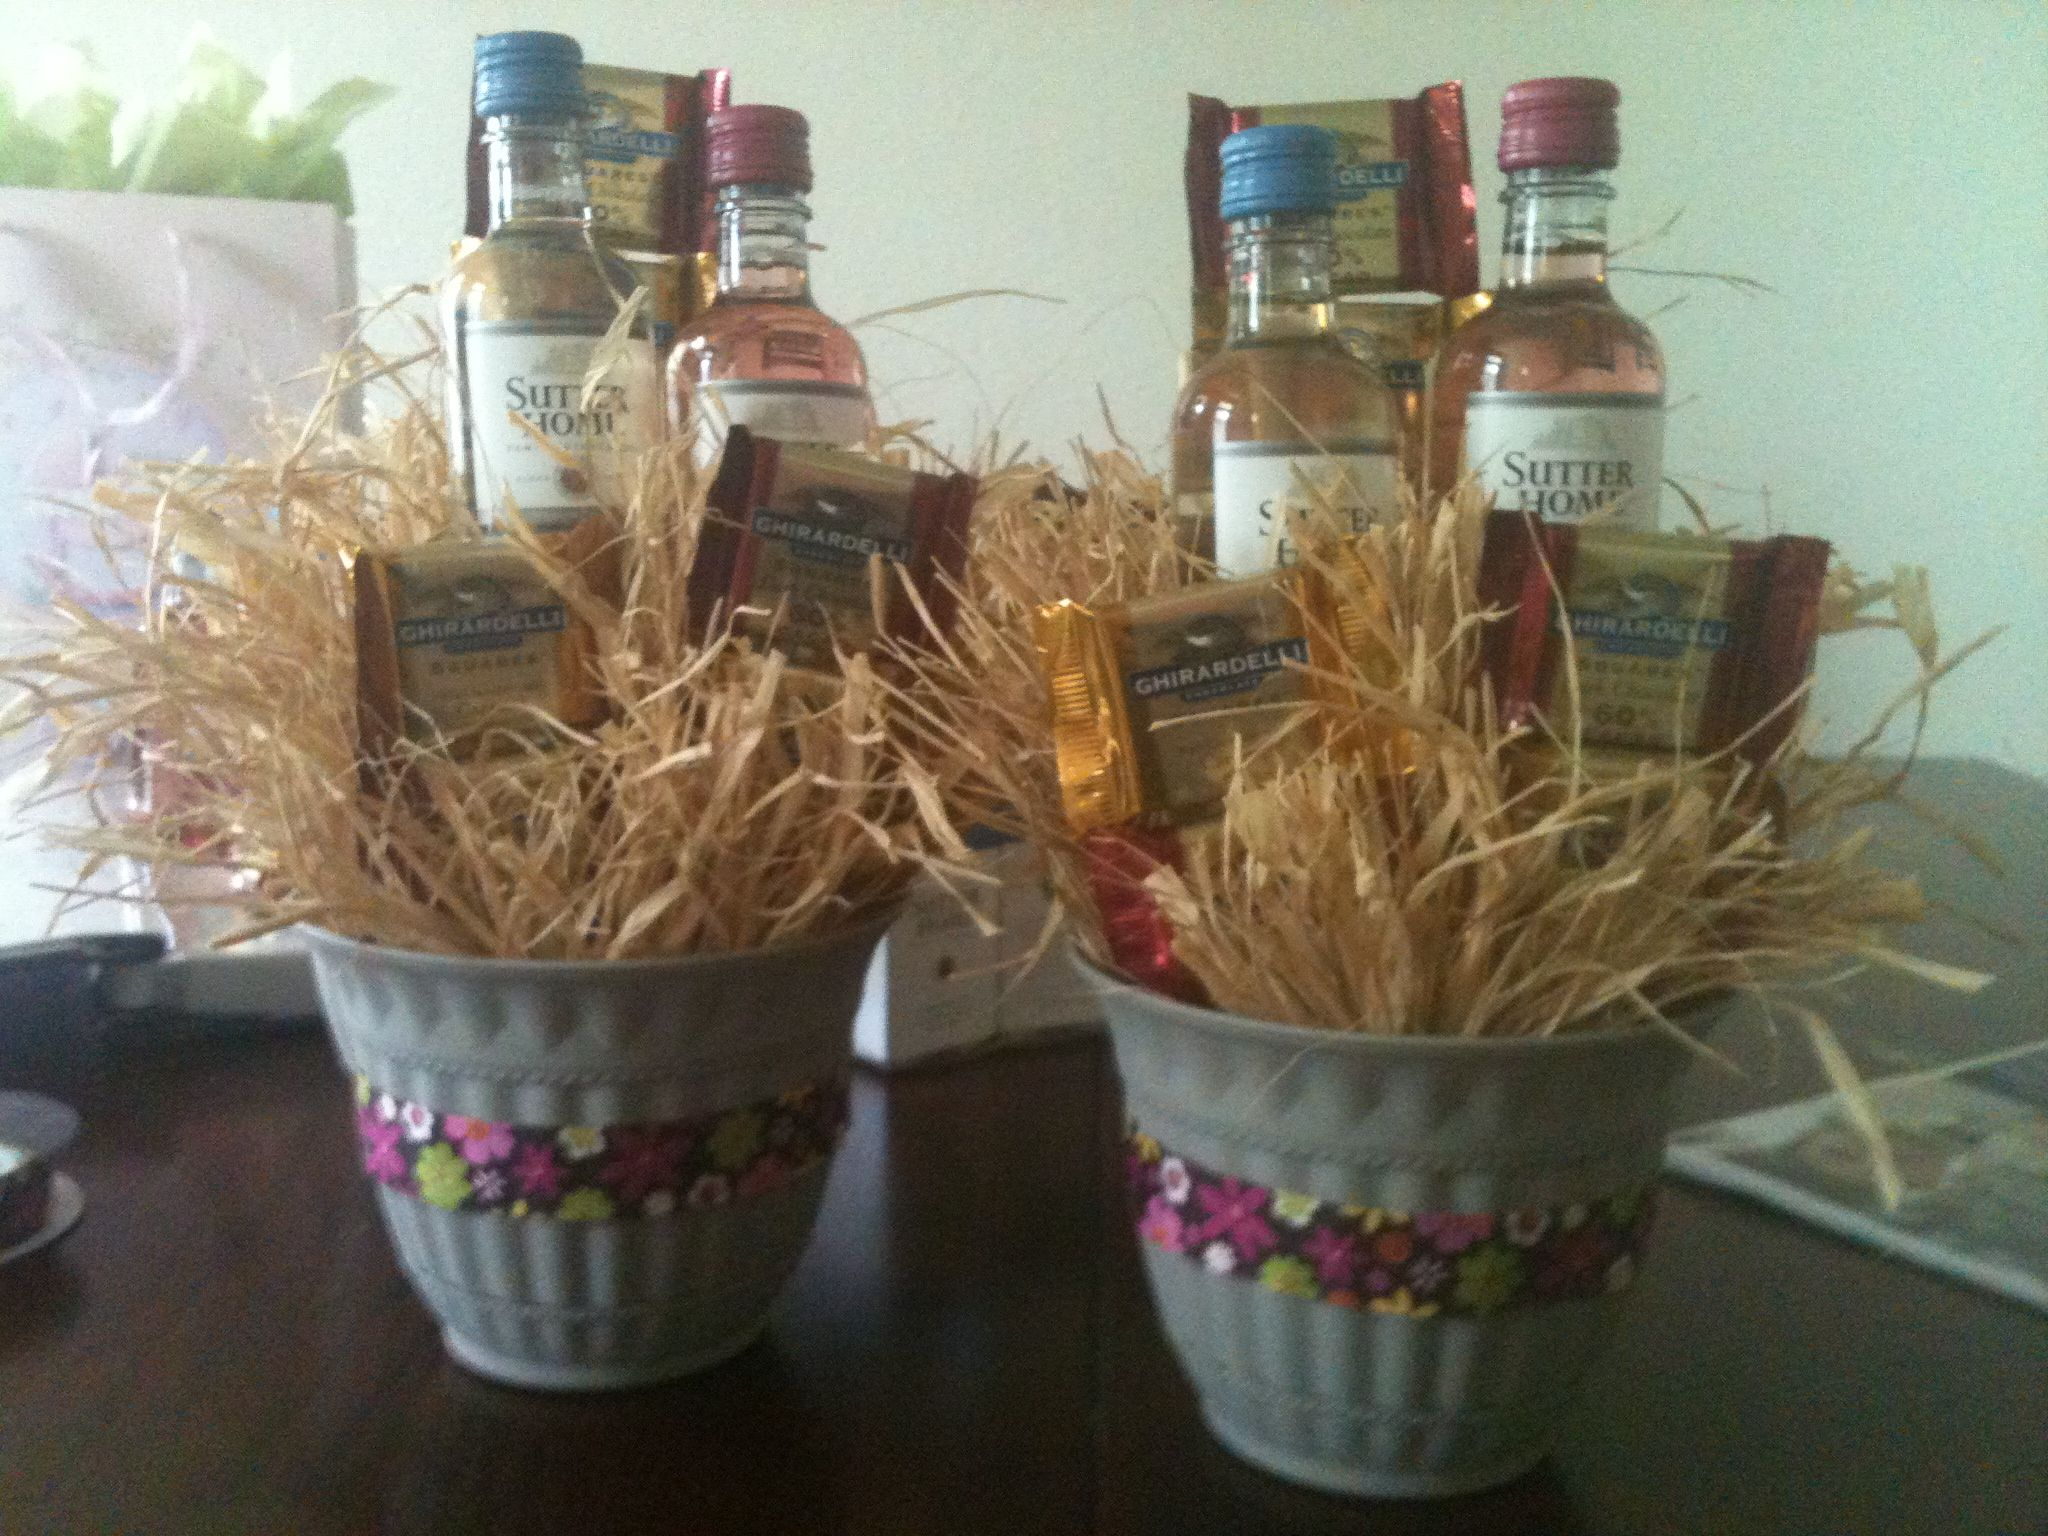 Create Small Gift Baskets With Wine & Chocolate For Your